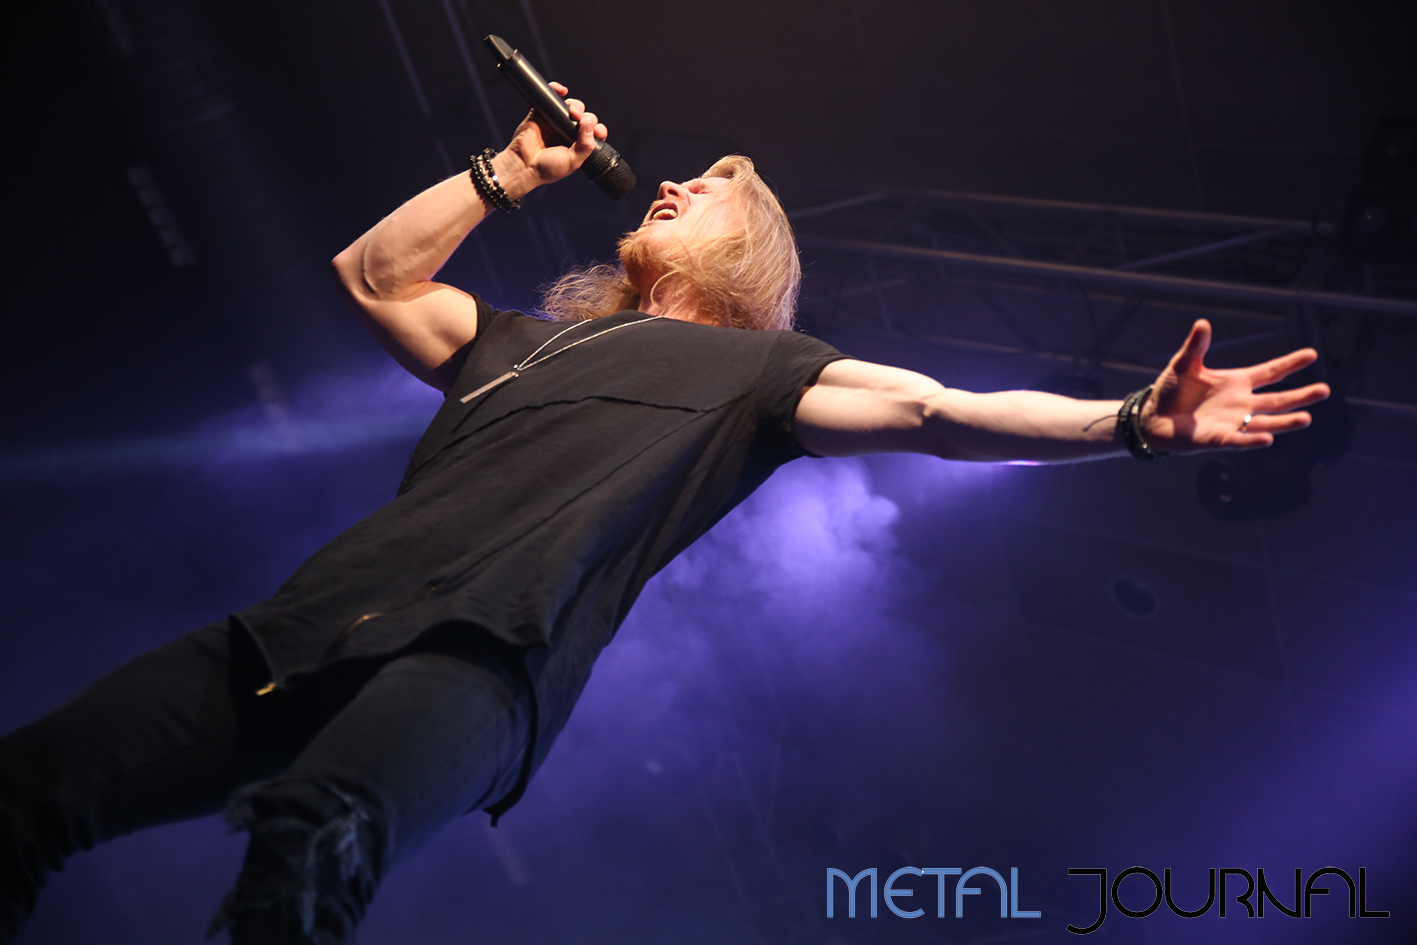 arion metal journal bilbao 2019 pic 8